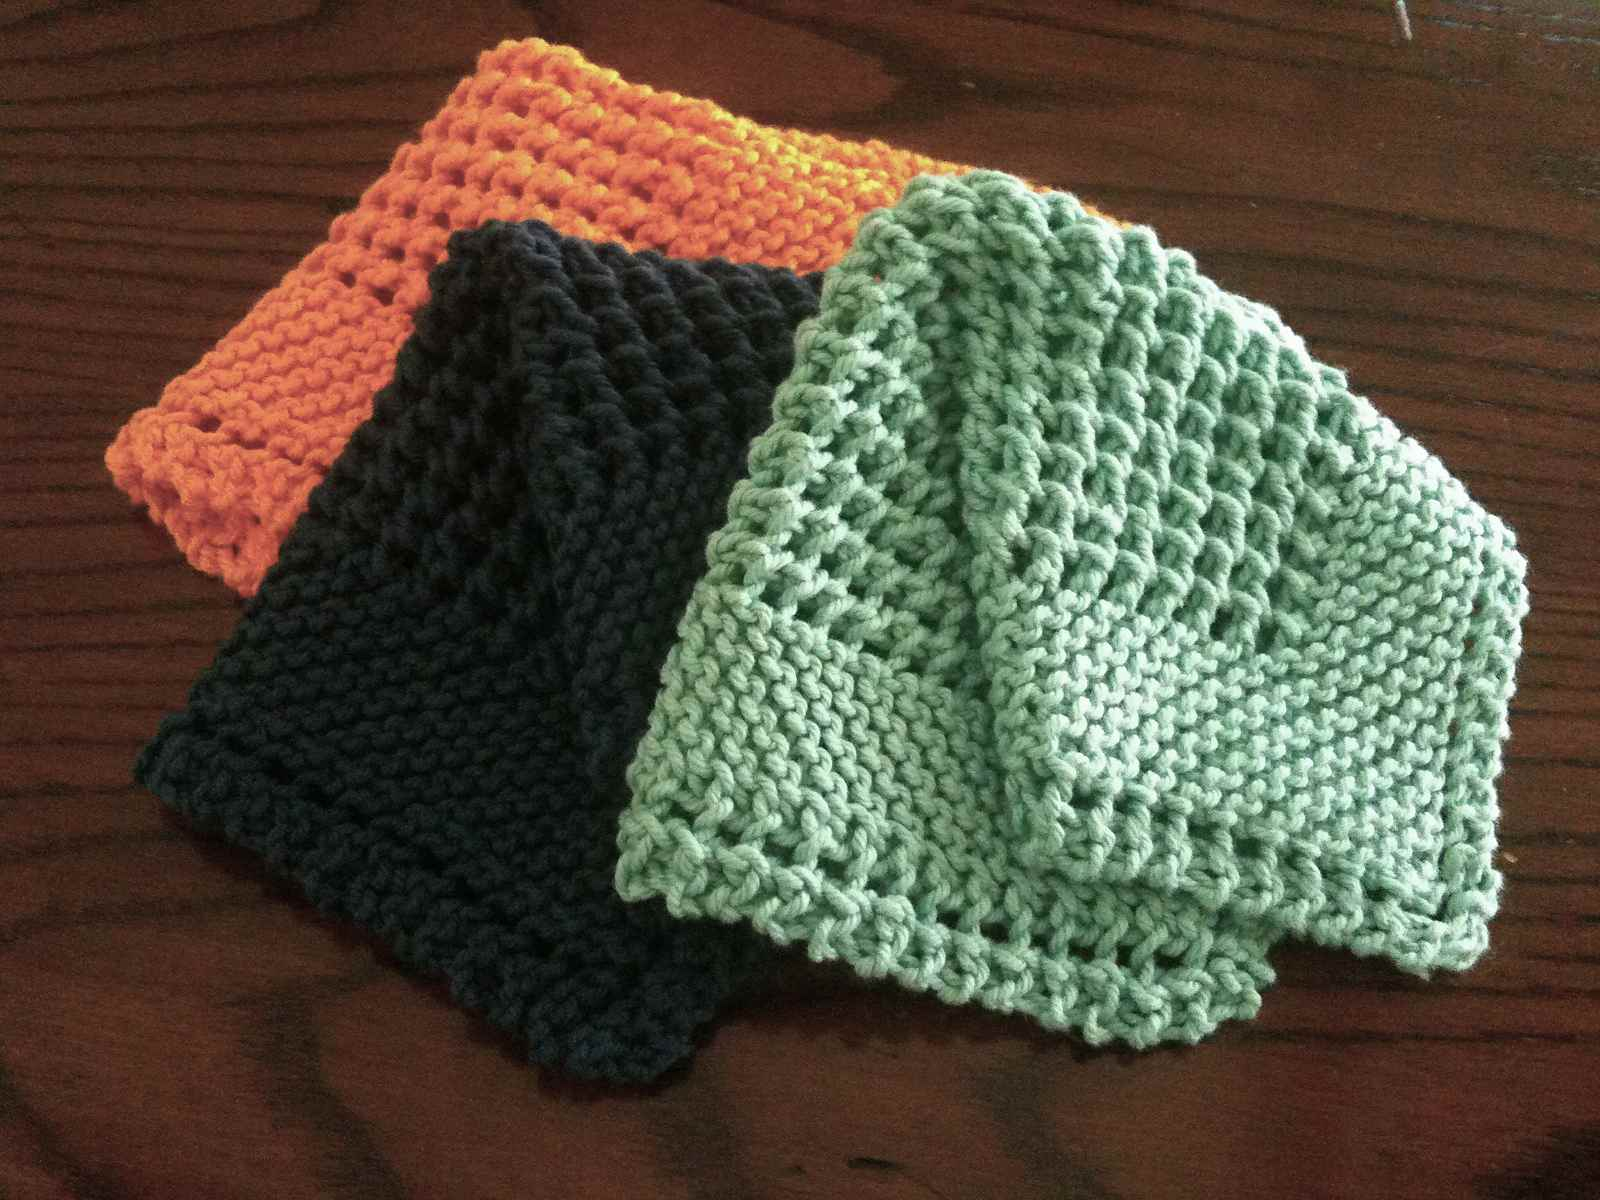 Knitting Patterns Designs 10 Knit Dishcloth Patterns For Beginners